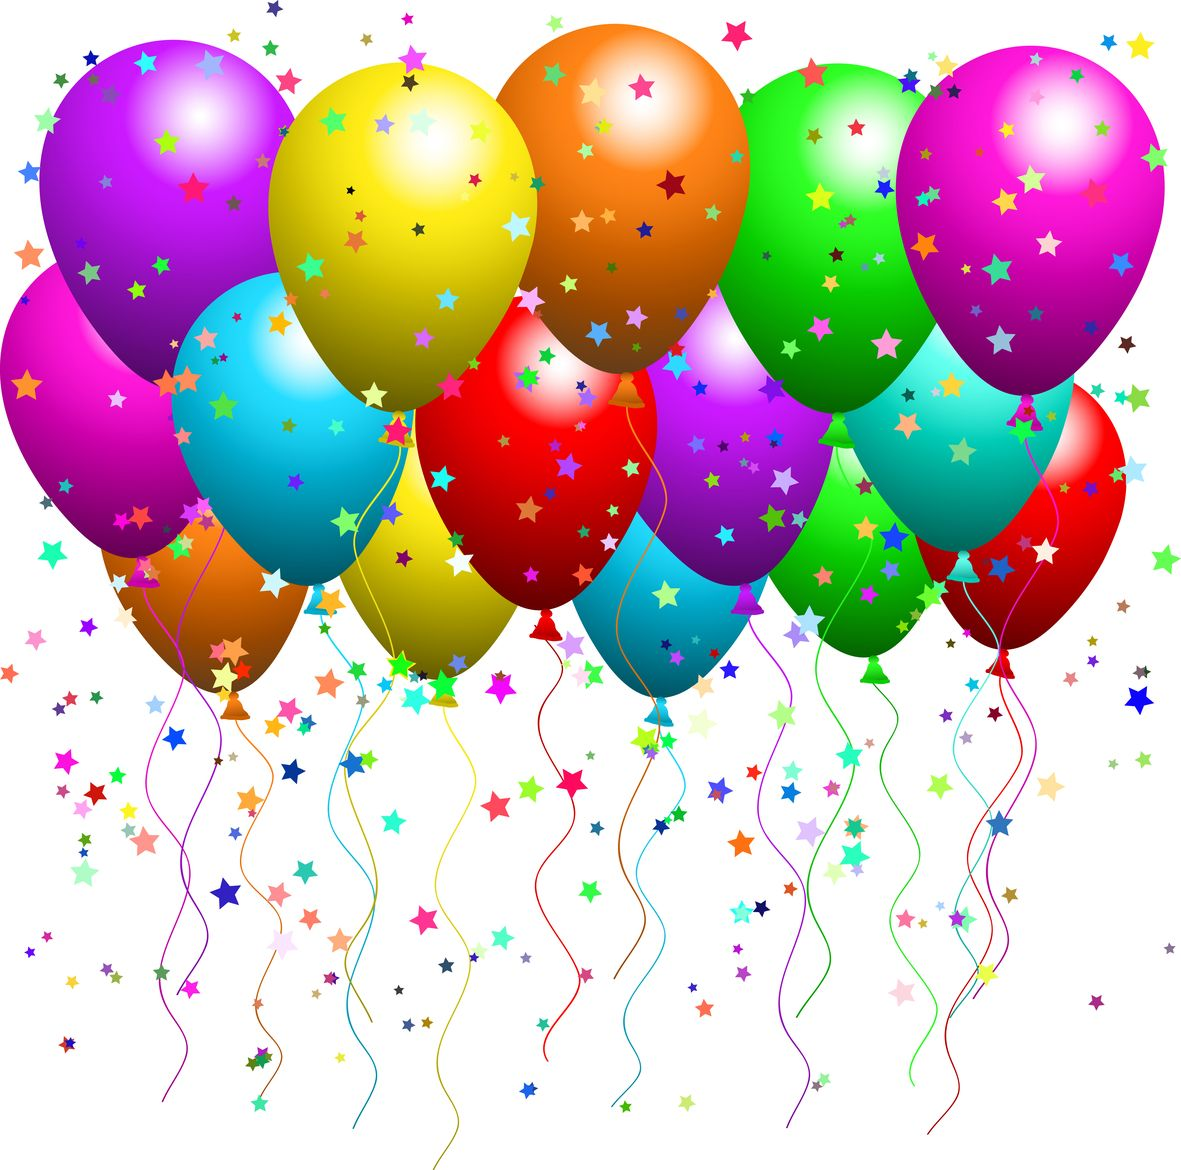 clipart birthday cake and balloons ; 10d4a2e6fc033b57314f10221eef9e1d